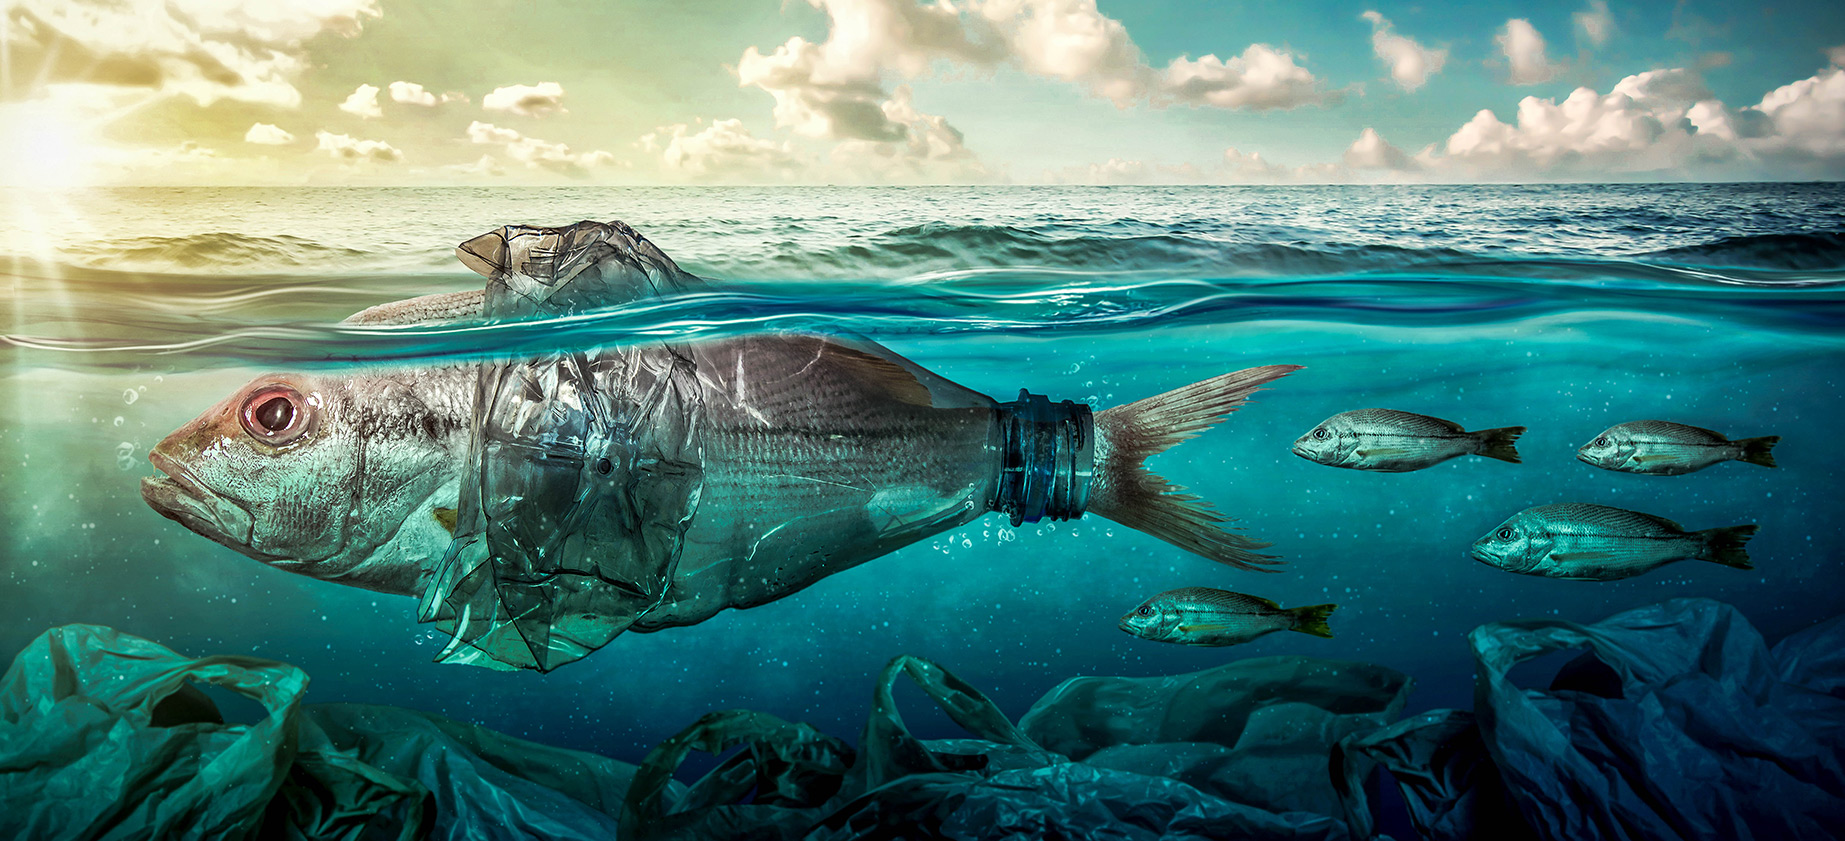 Fish in see with plastic waste- aqua culture - sustainability